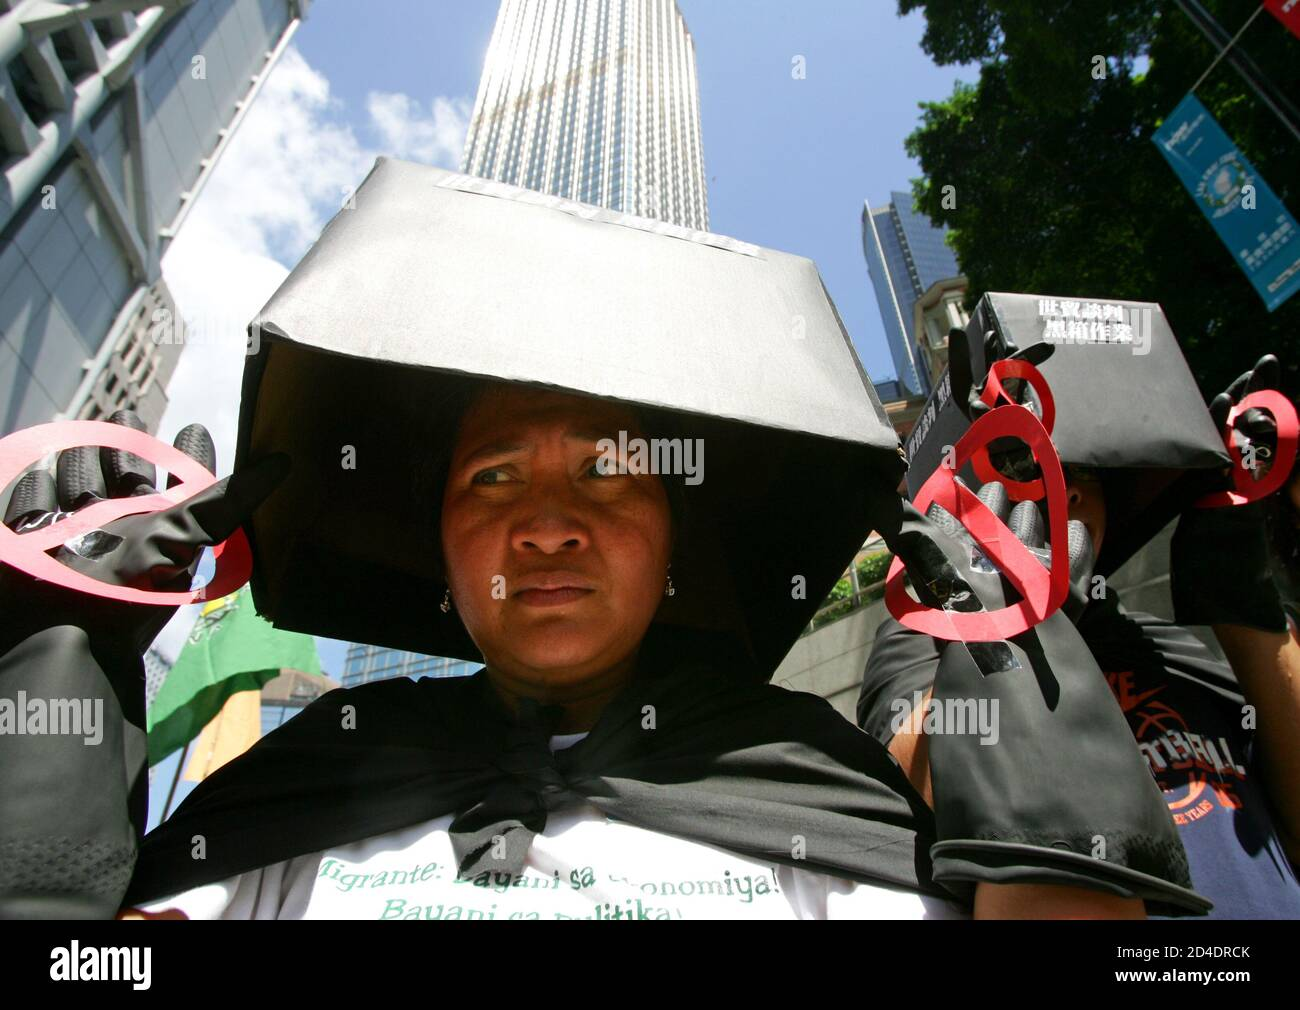 """A protester, with a black box covering her head to symbolise the government leaving the people in the dark during the negotiation on the """"General Agreement on Trade in Services"""" (GATS), takes part in an anti-WTO march held by the Hong Kong People's Alliance on WTO in Hong Kong July 24, 2005. REUTERS/Paul Yeung  PY/CCK Stock Photo"""